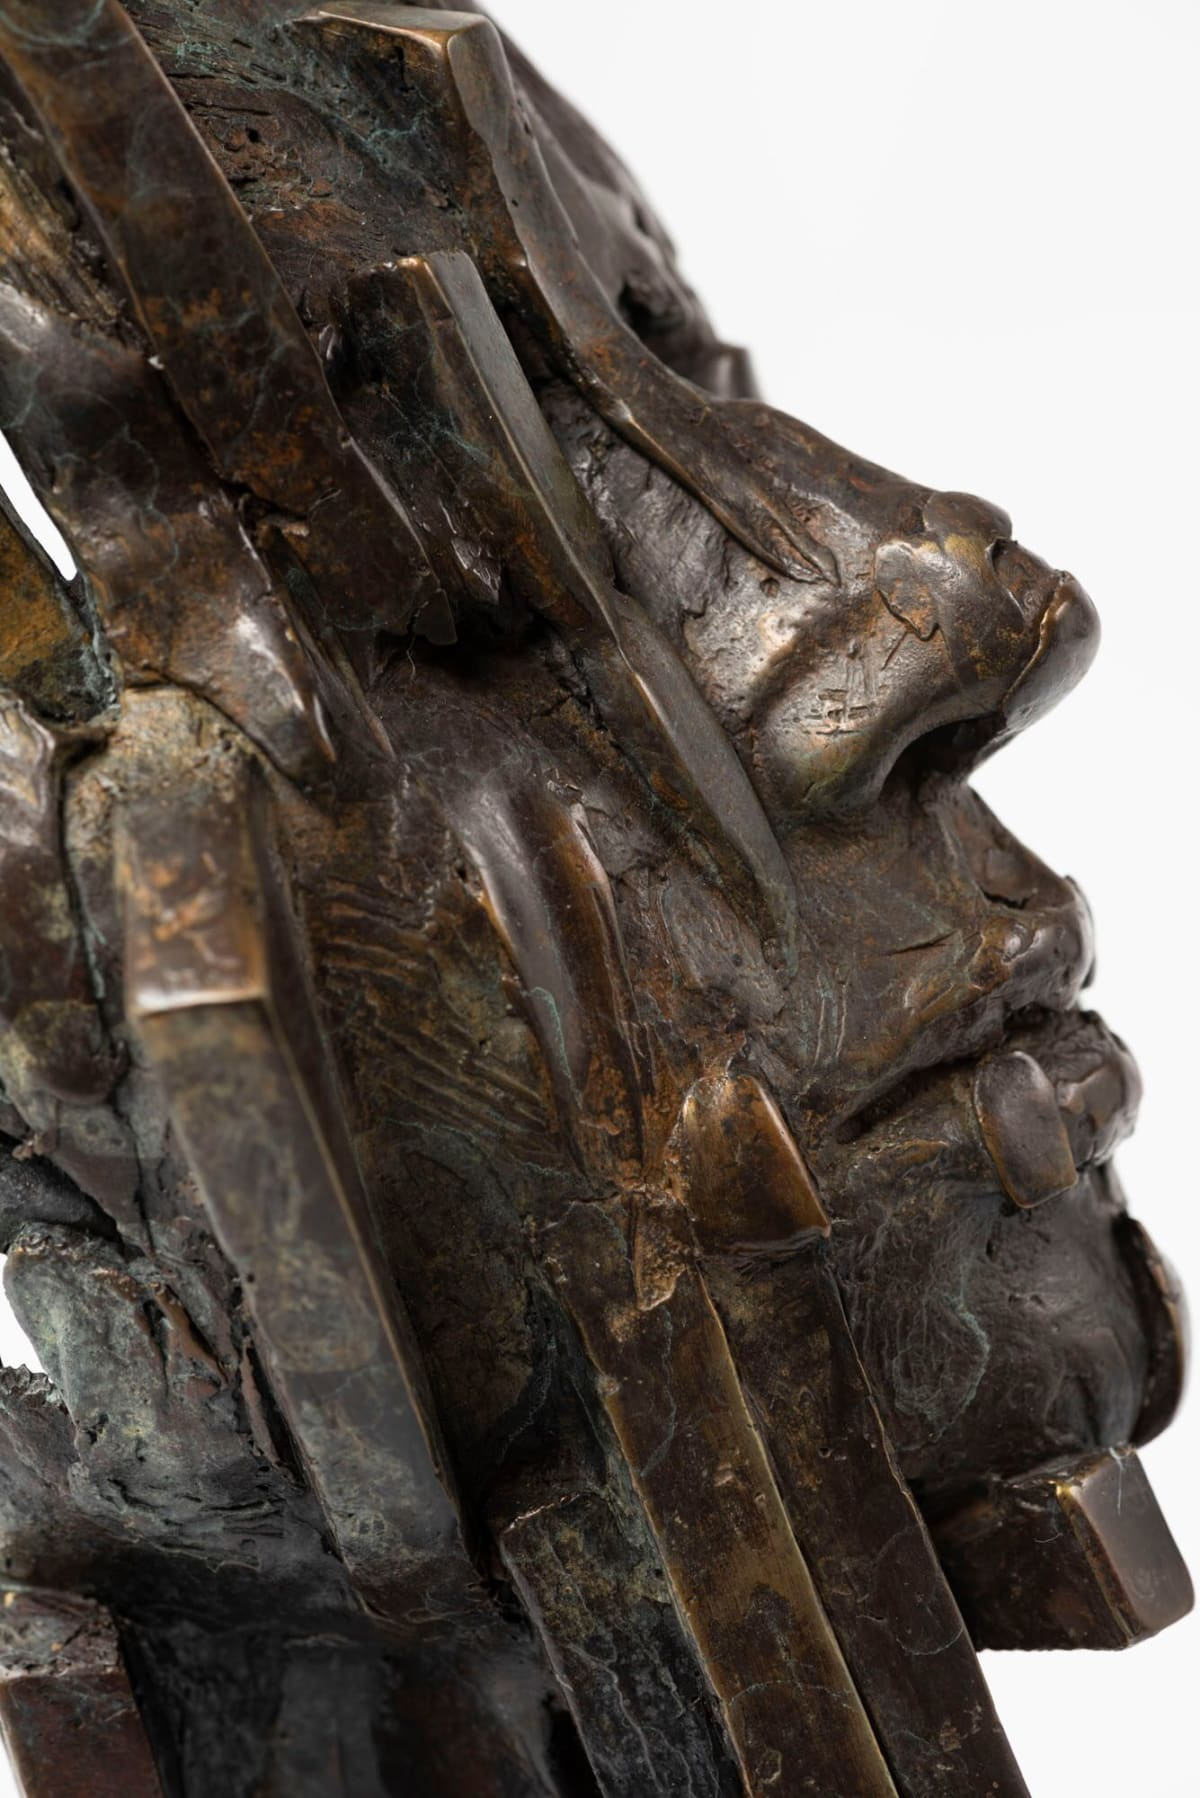 Damon Price Fractured, 2019 Bronze Sculpture 63 x 16 x 18 cm 24 3/4 x 6 1/4 x 7 1/8 in Edition 1 of 1